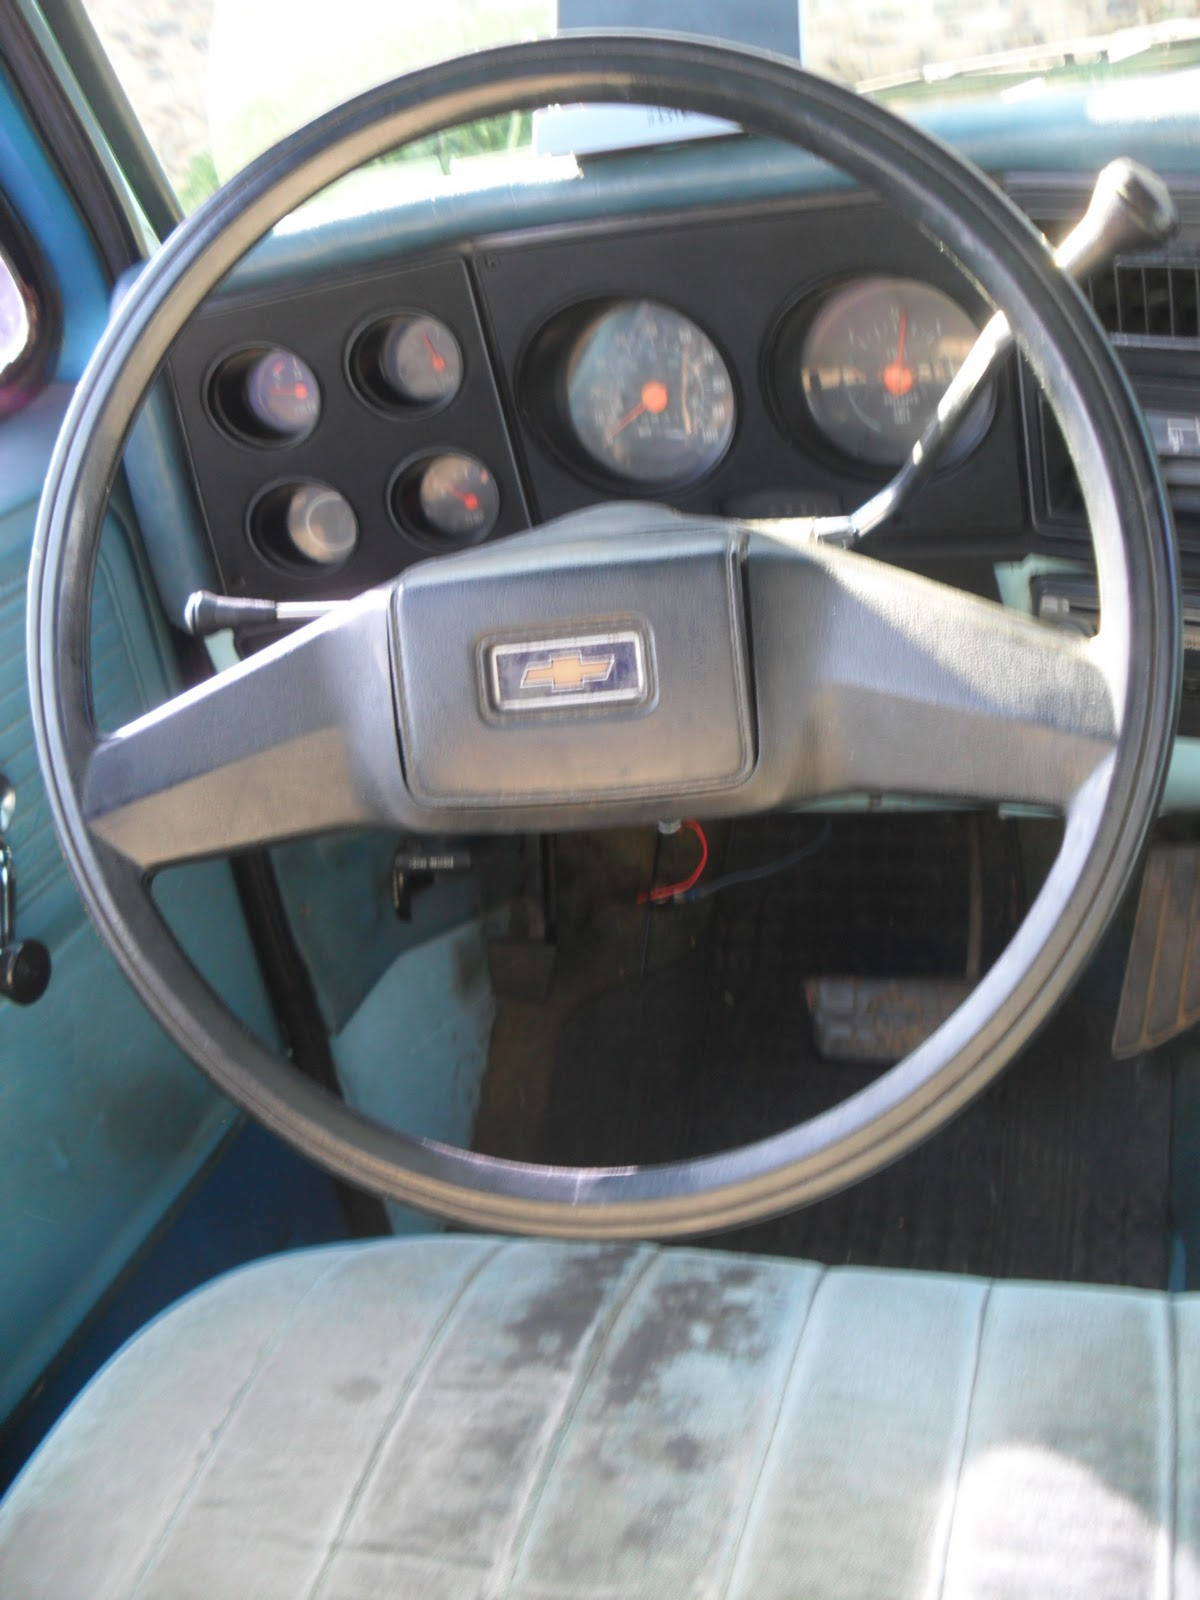 1978 Chevy C10 Under The Hood New Steering Wheel Chevrolet Went Onto Post Where They Have A Garage For Soldiers To Work In Had Use Tap And Dye Fix Threads After I Got All That It Right On